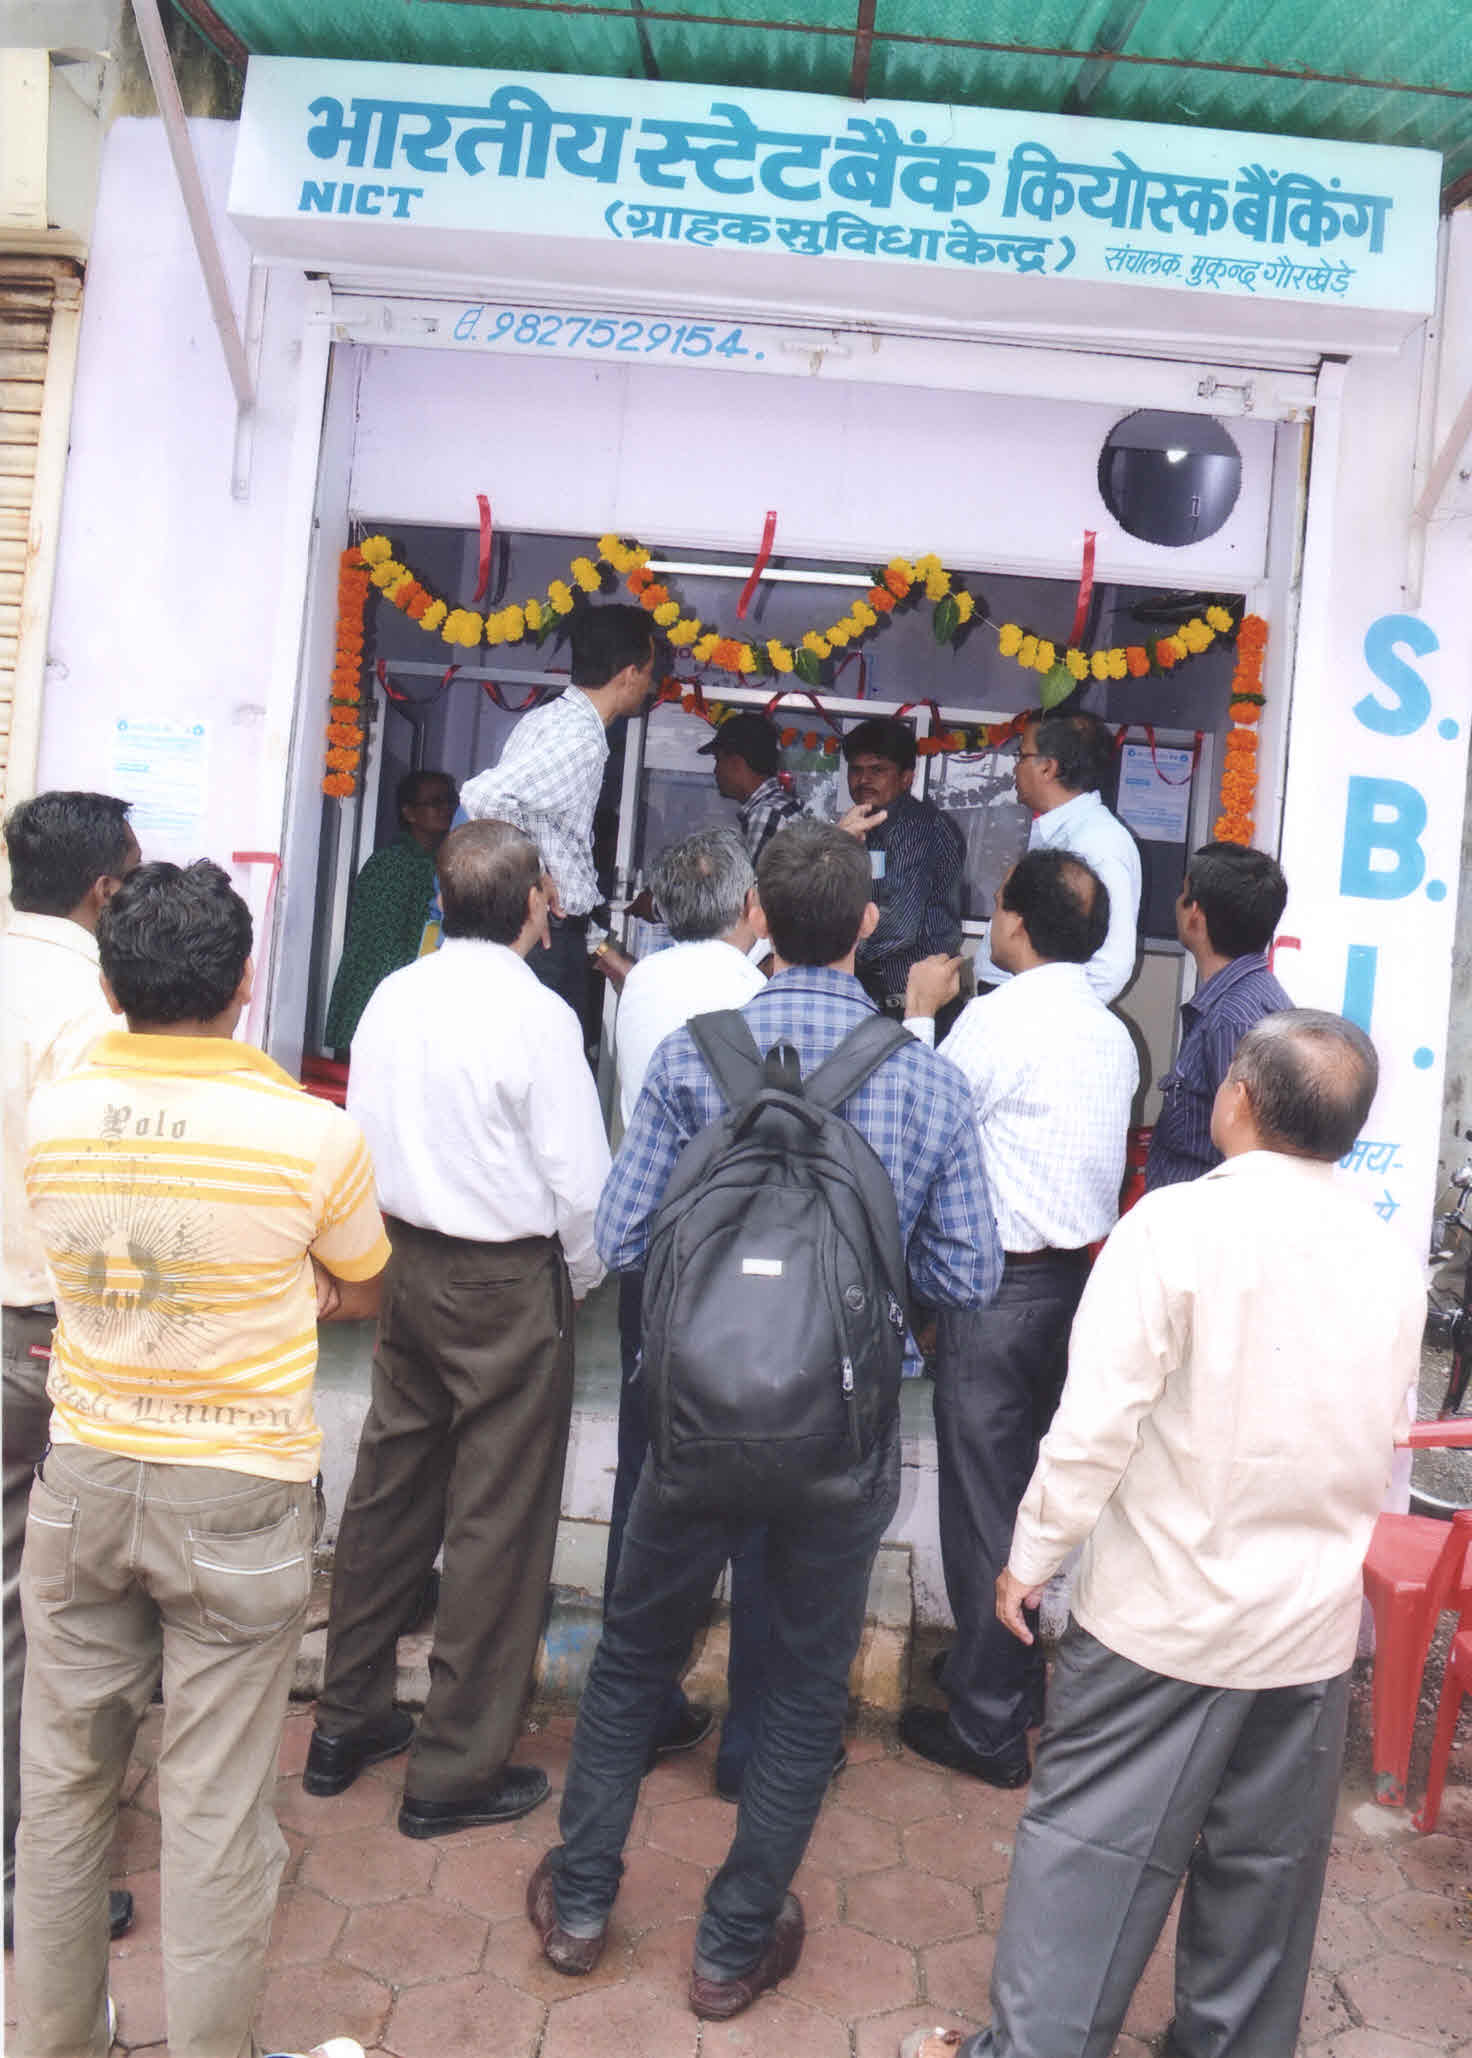 Urban kiosk banking inauguration ceremony indore